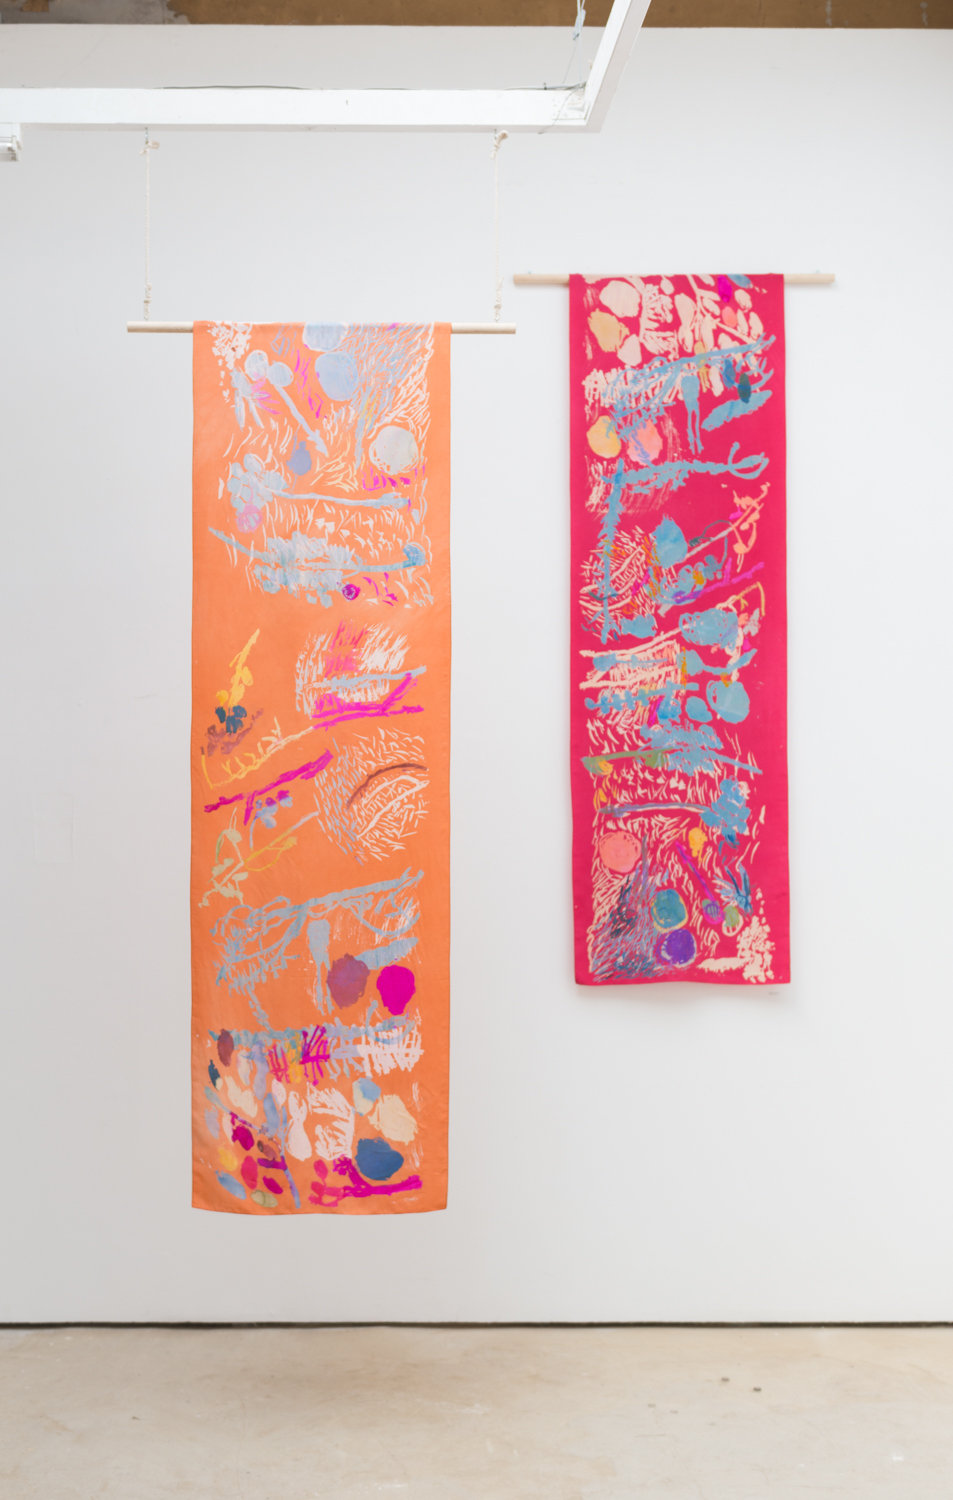 Hangings by Caitlin Hinshelwood Peckham craft show 2019.